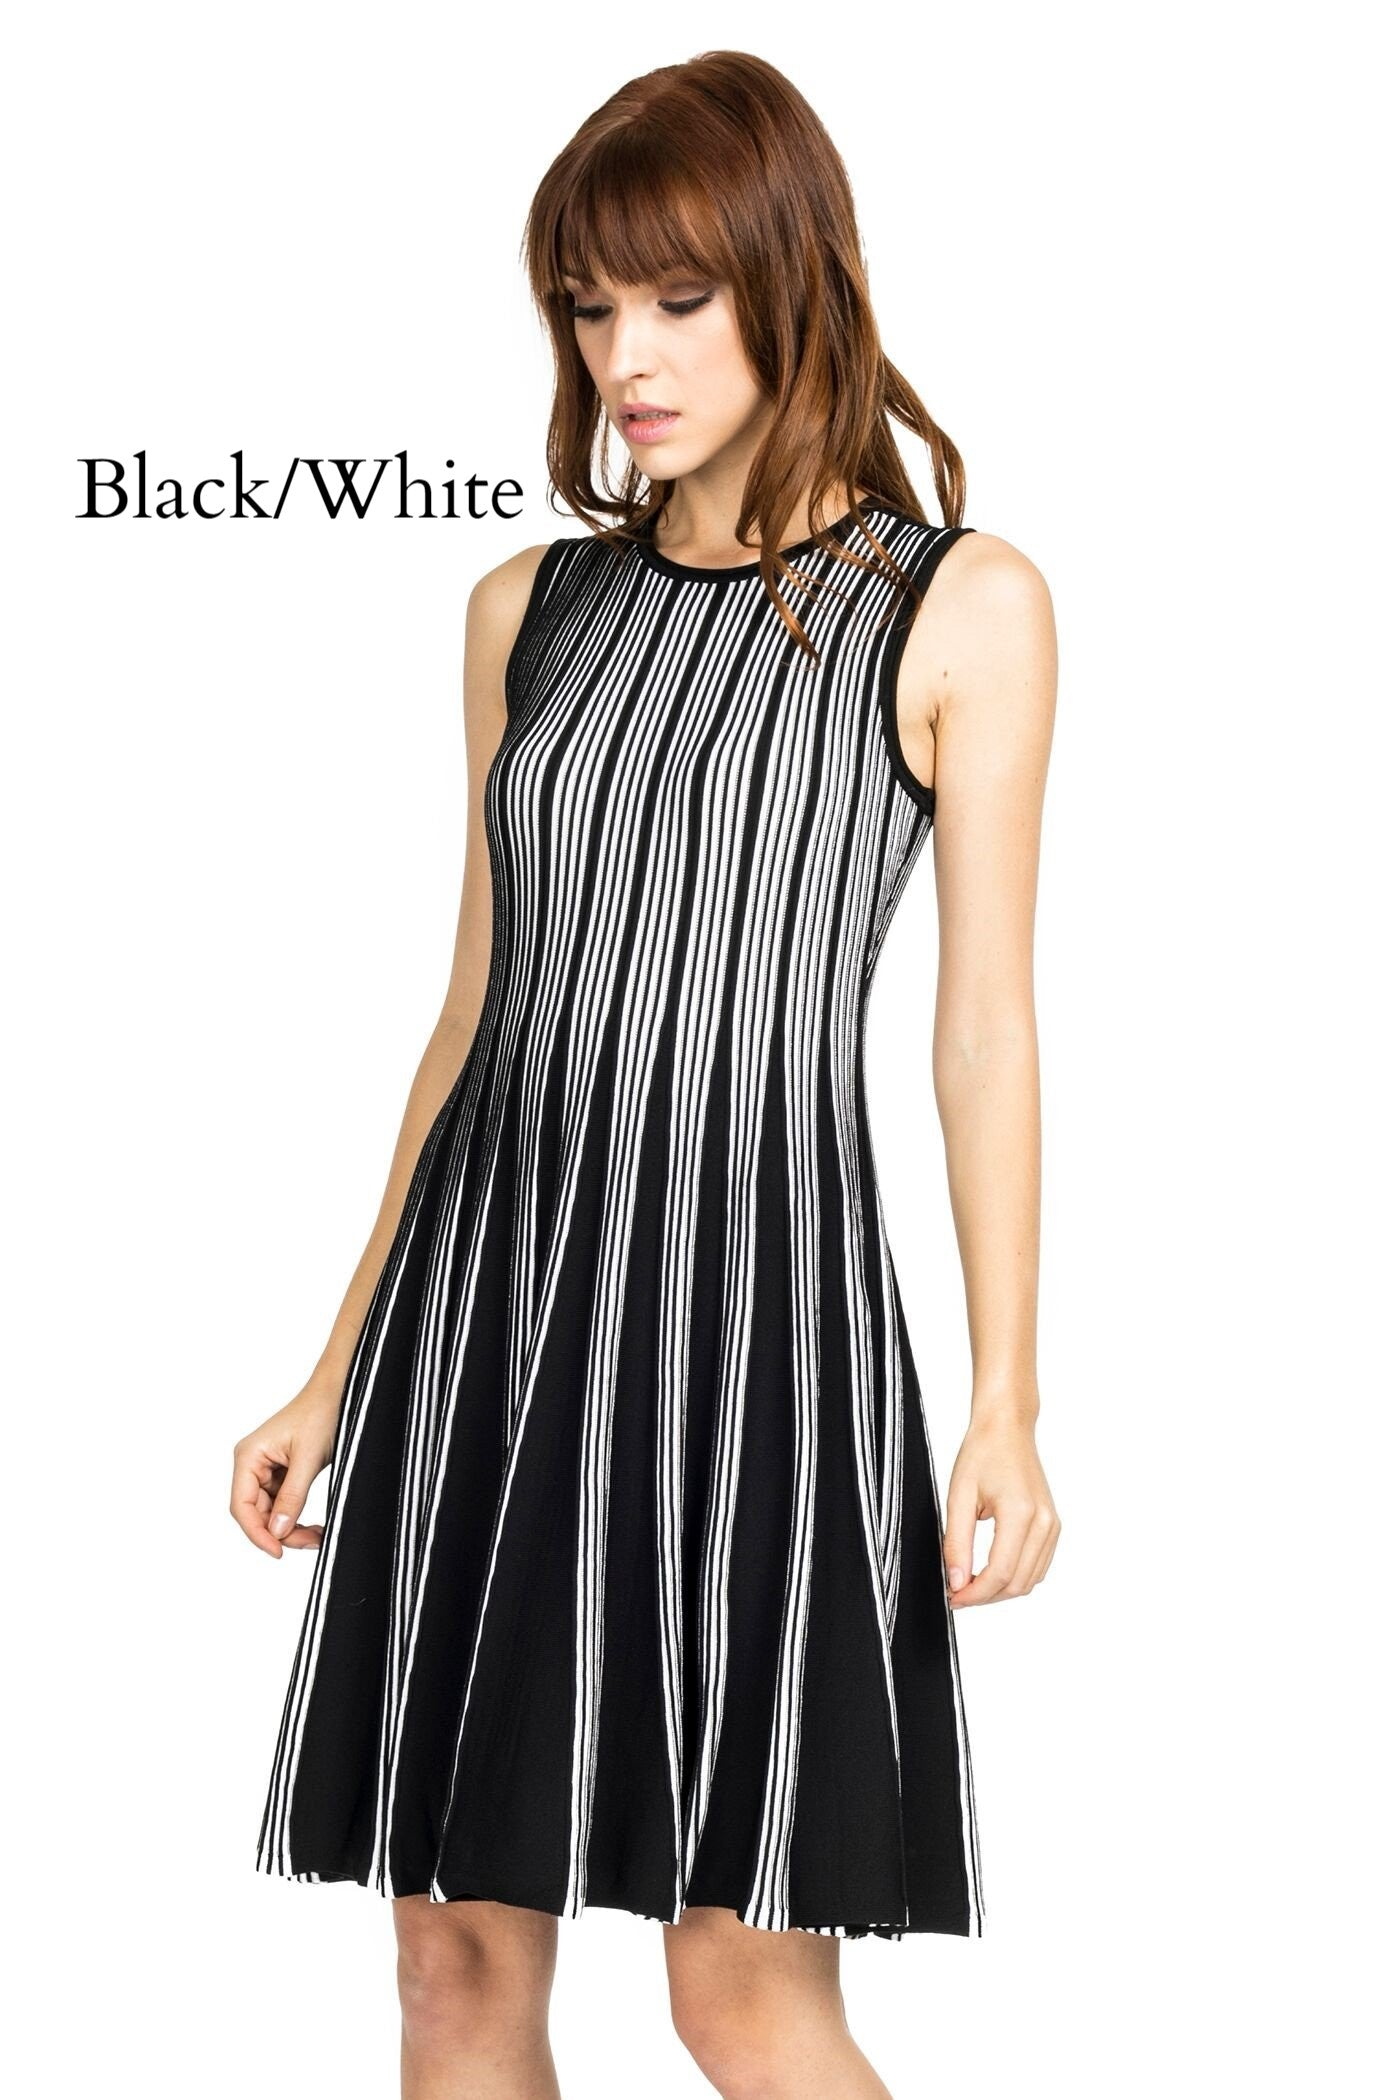 Brunette woman wearing black/white striped knit sleeveless fit-and-flare knee-length dress